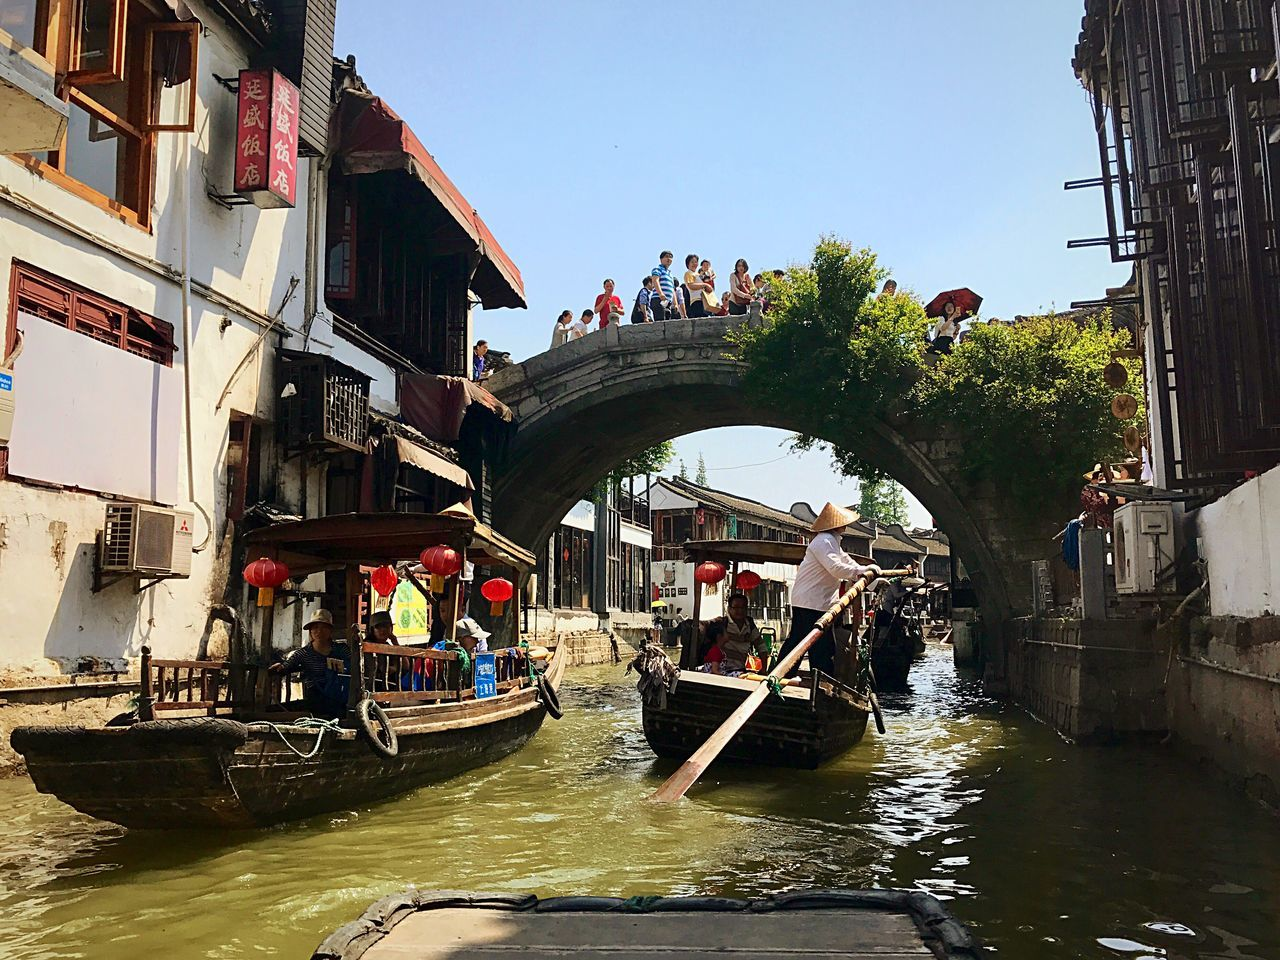 Architecture Nautical Vessel Building Exterior Built Structure Canal Transportation Water Day Waterfront Outdoors Large Group Of People Gondolier Gondola - Traditional Boat People Real People Rowing Men Oar Adults Only Adult Zhujiajiao Zhujiang River